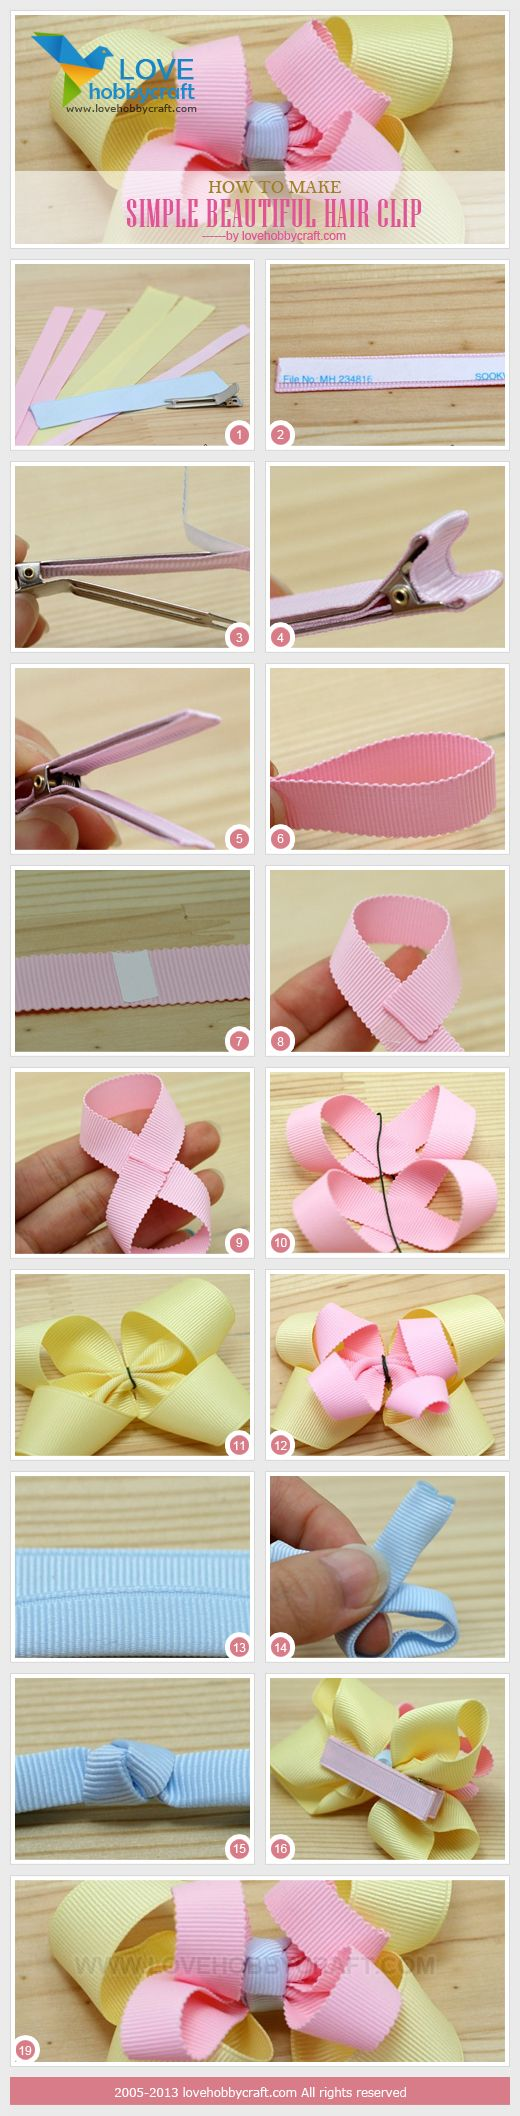 Simple hair clip